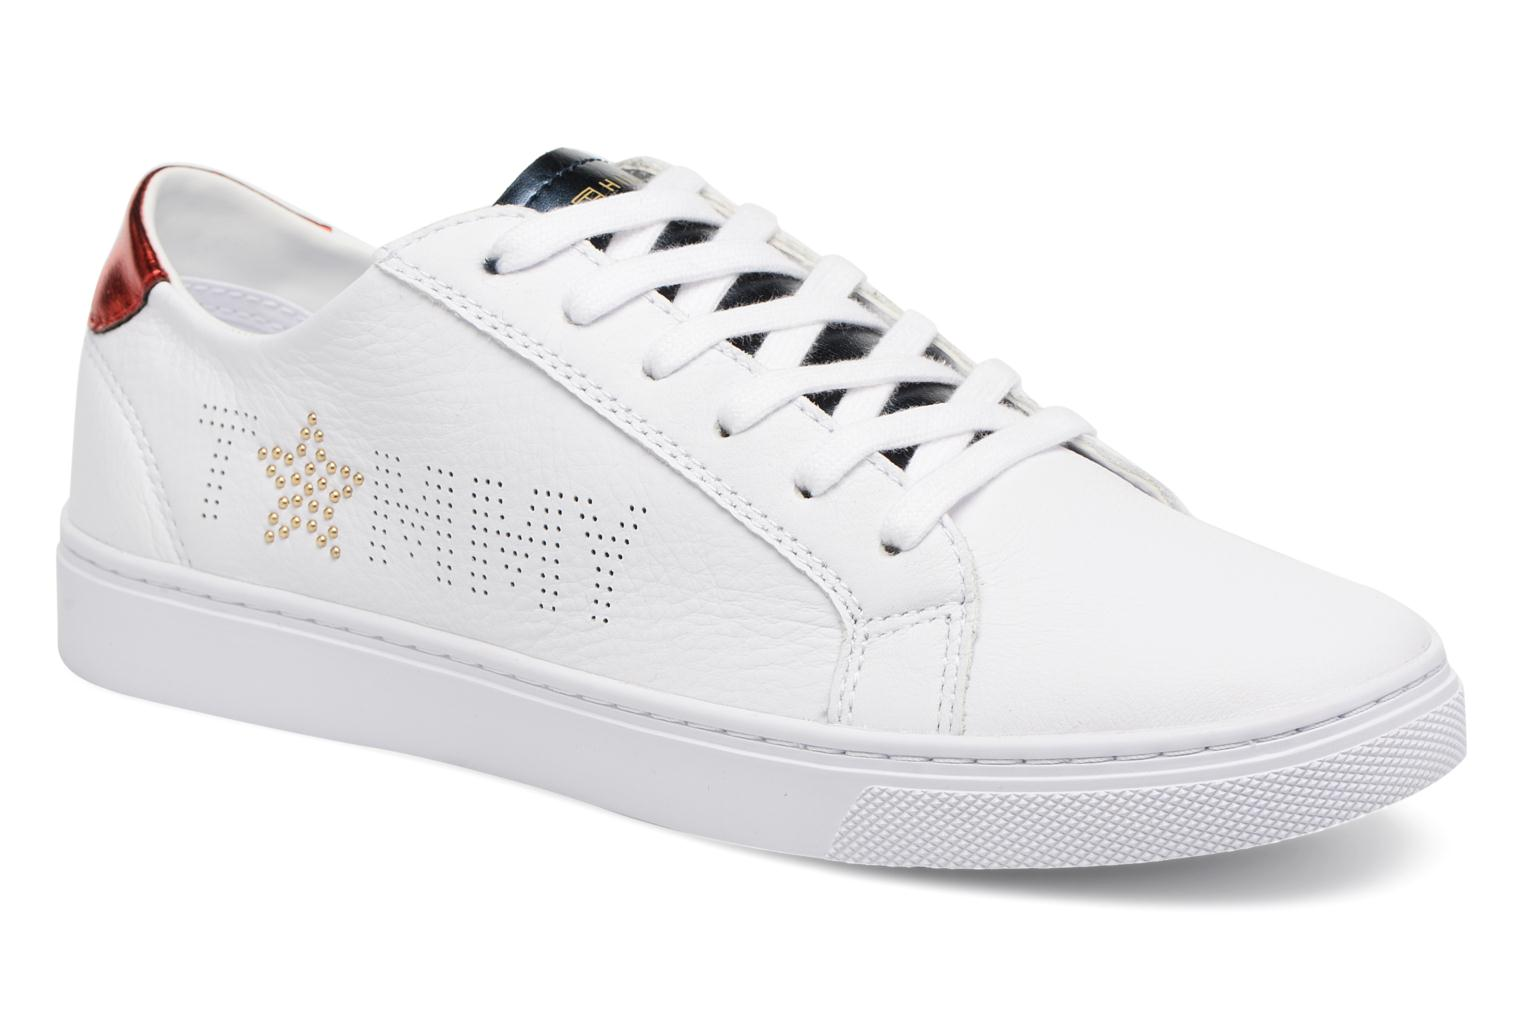 TOMMY STAR METALLIC SNEAKER RWB